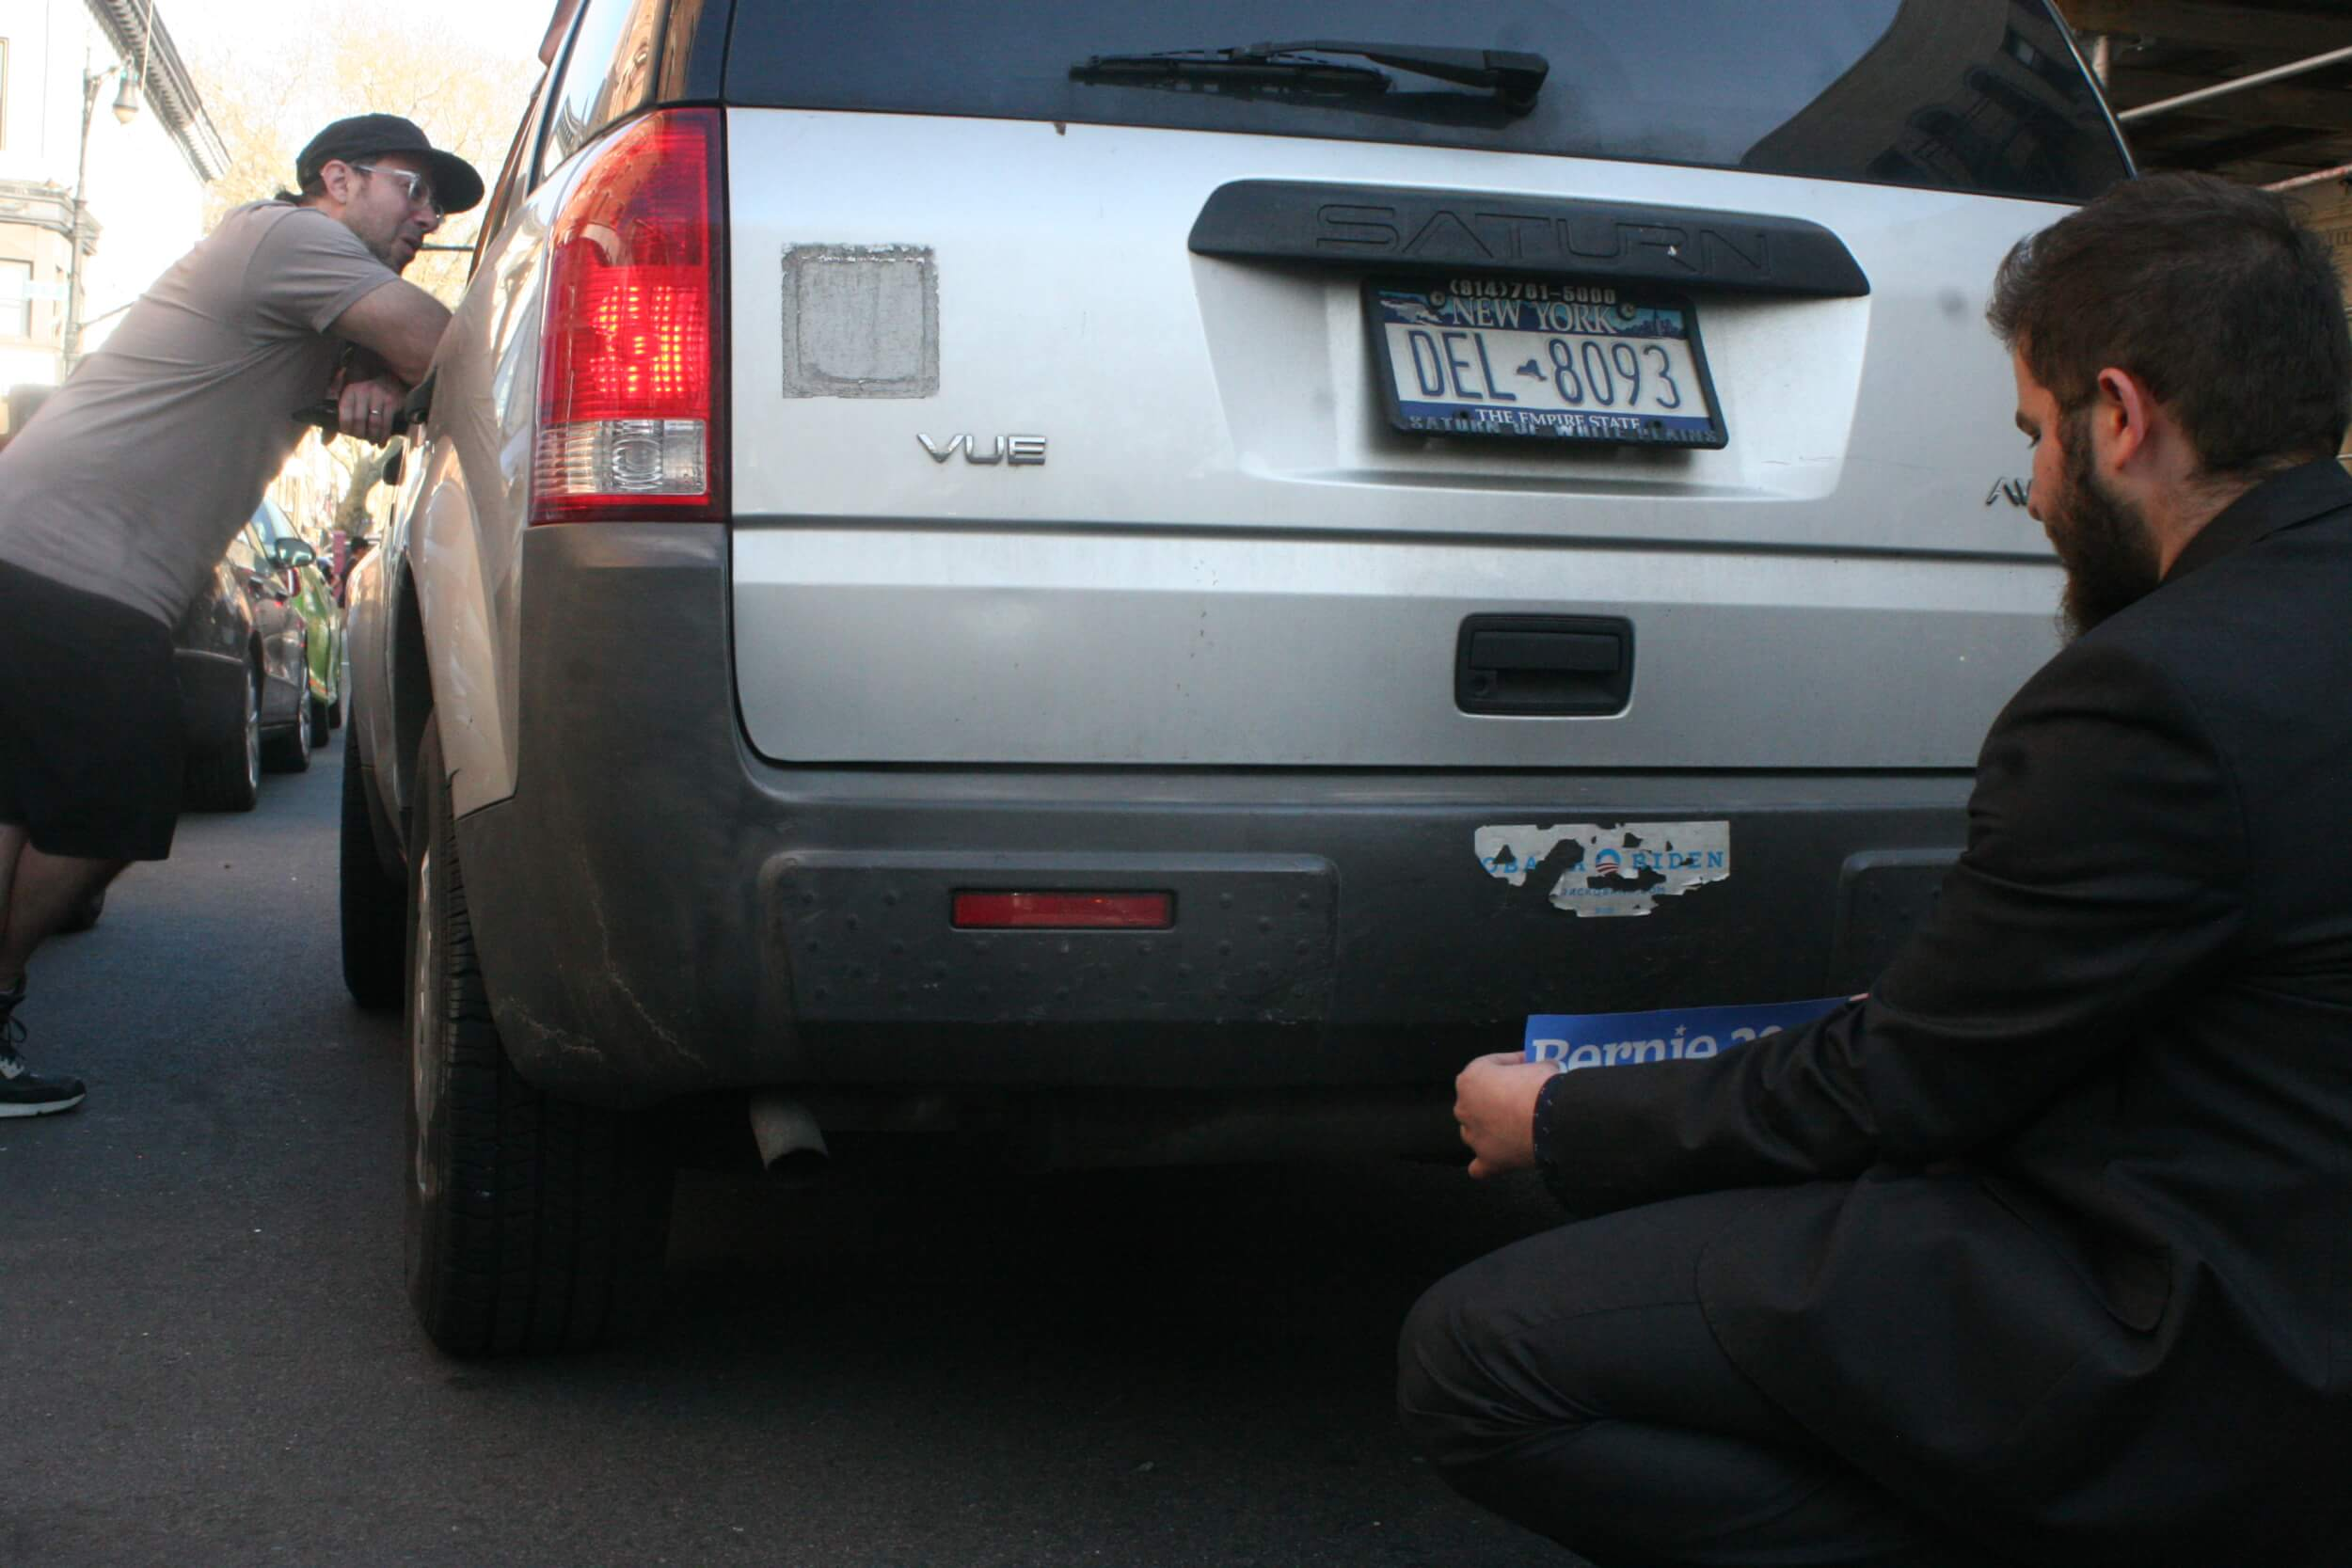 Abderahmanne Amor, an Algerian-American Sanders supporter and student at Ohio State, puts a Bernie Sanders bumper sticker over an ancient Obama-Biden sticker in Bay Ridge on April 19, 2016, the day of the New York primary, which Sanders would go on to lose.